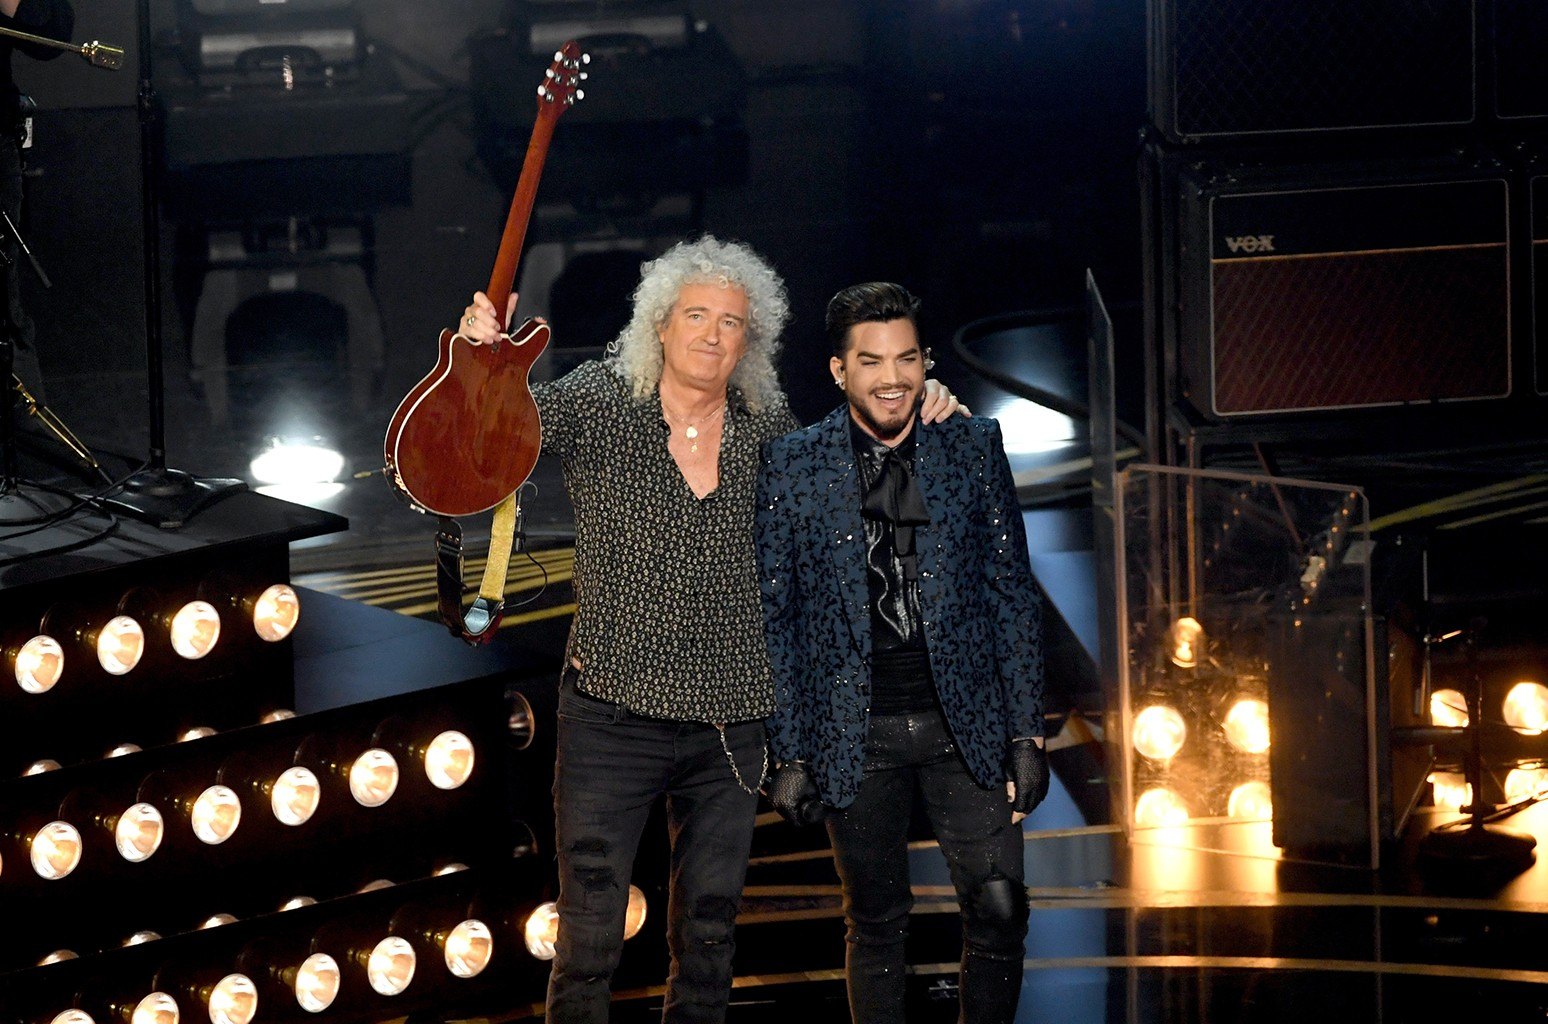 Oscars 2019 Queen Adam Lambert Perform We Will Rock You We Are The Champions Billboard Billboard